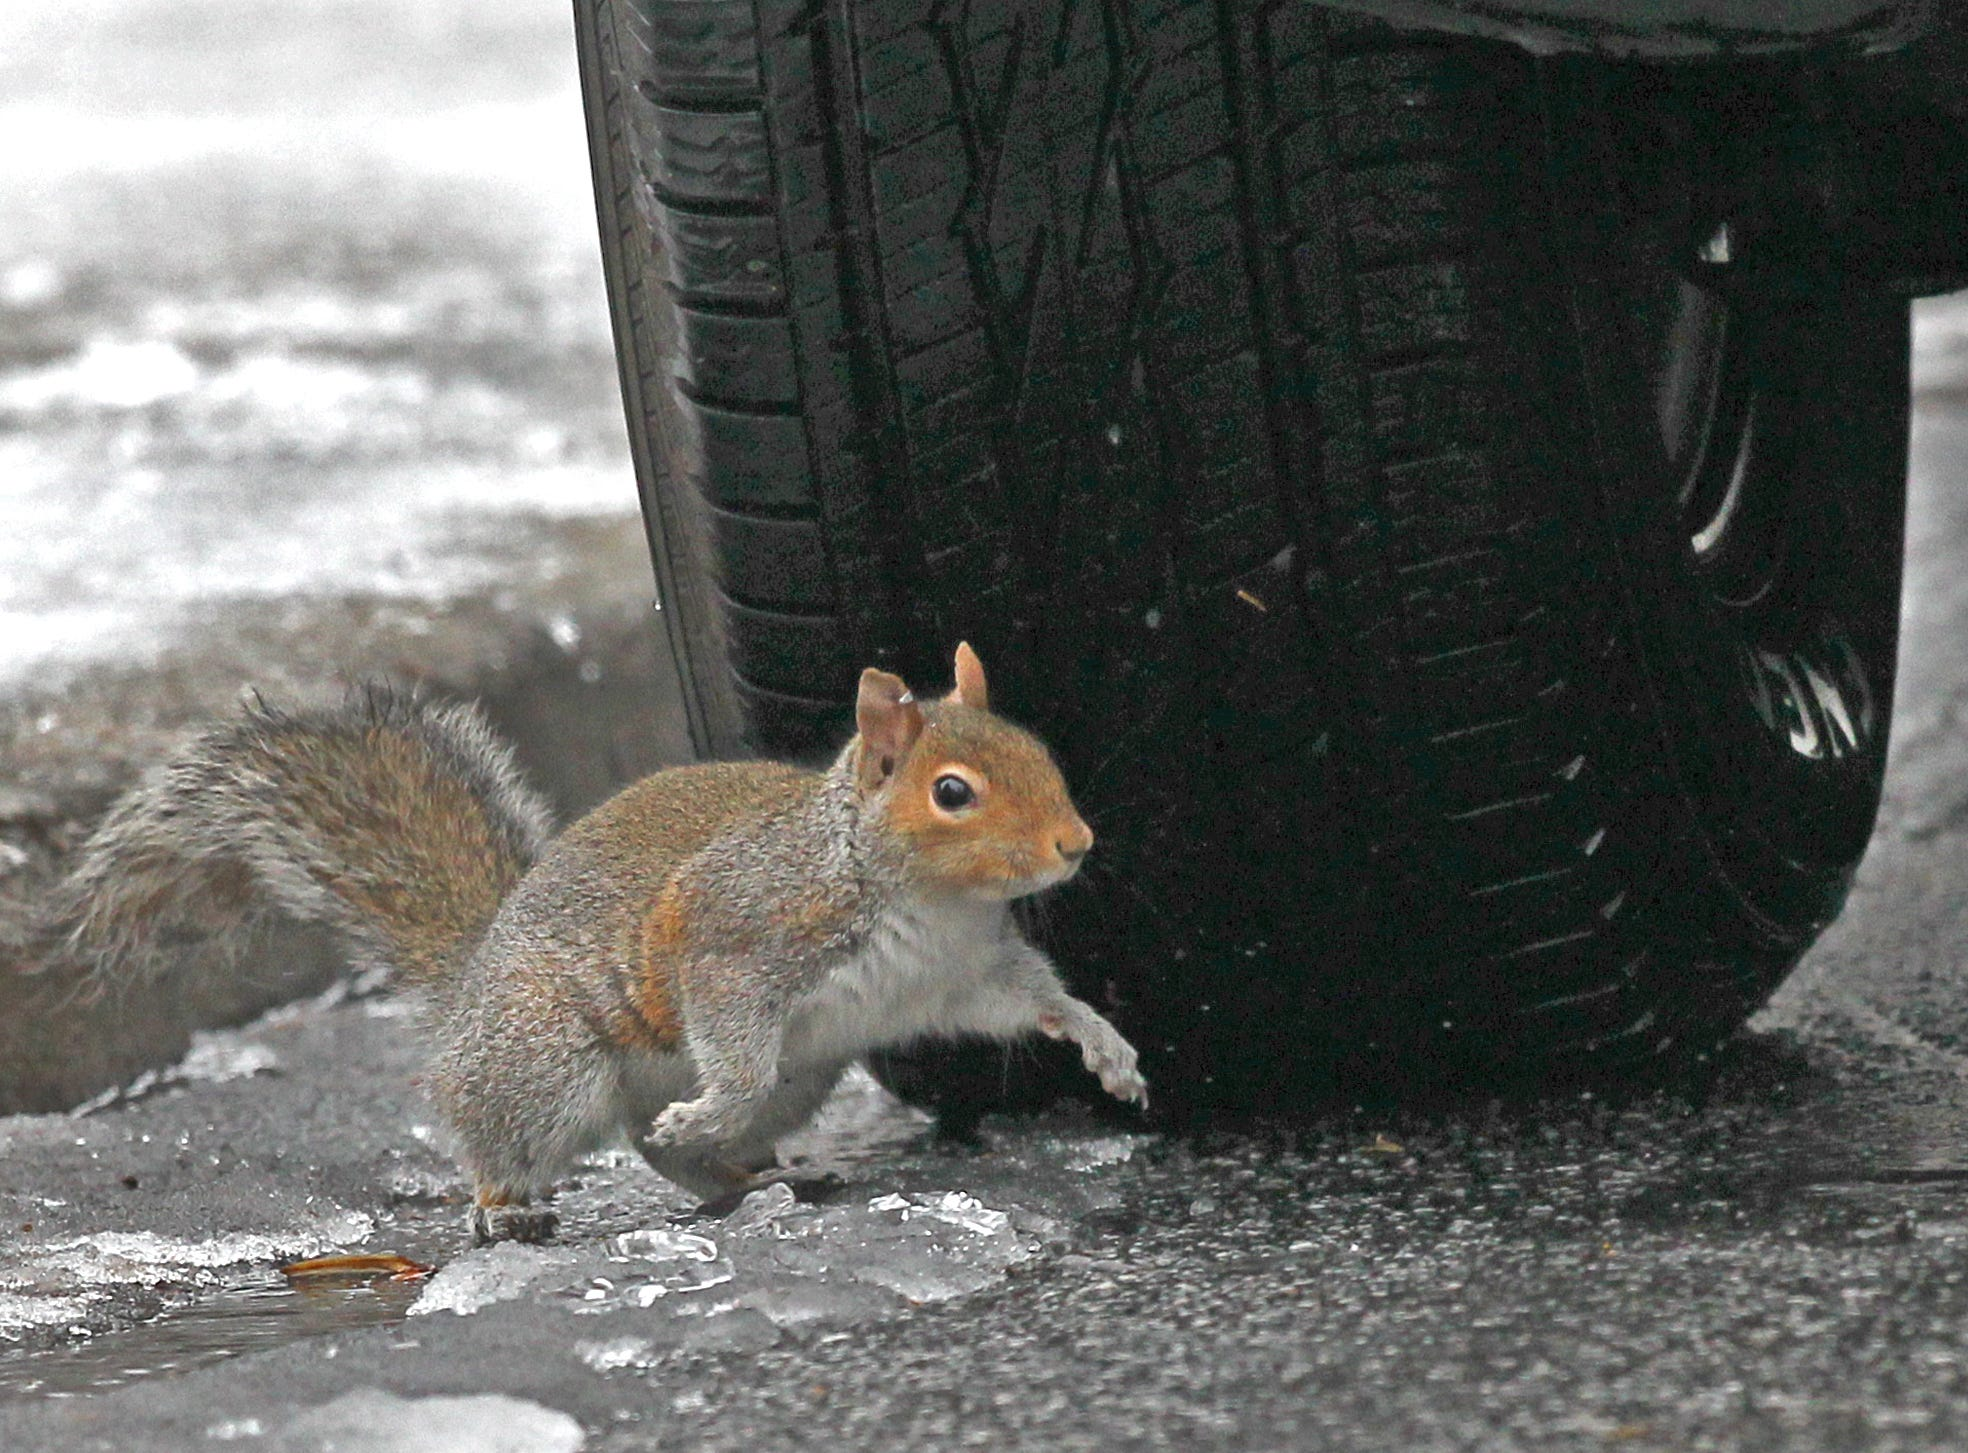 A squirrel runs around a parked car tire and melting snow near Tillman Hall at Clemson University in 2015.